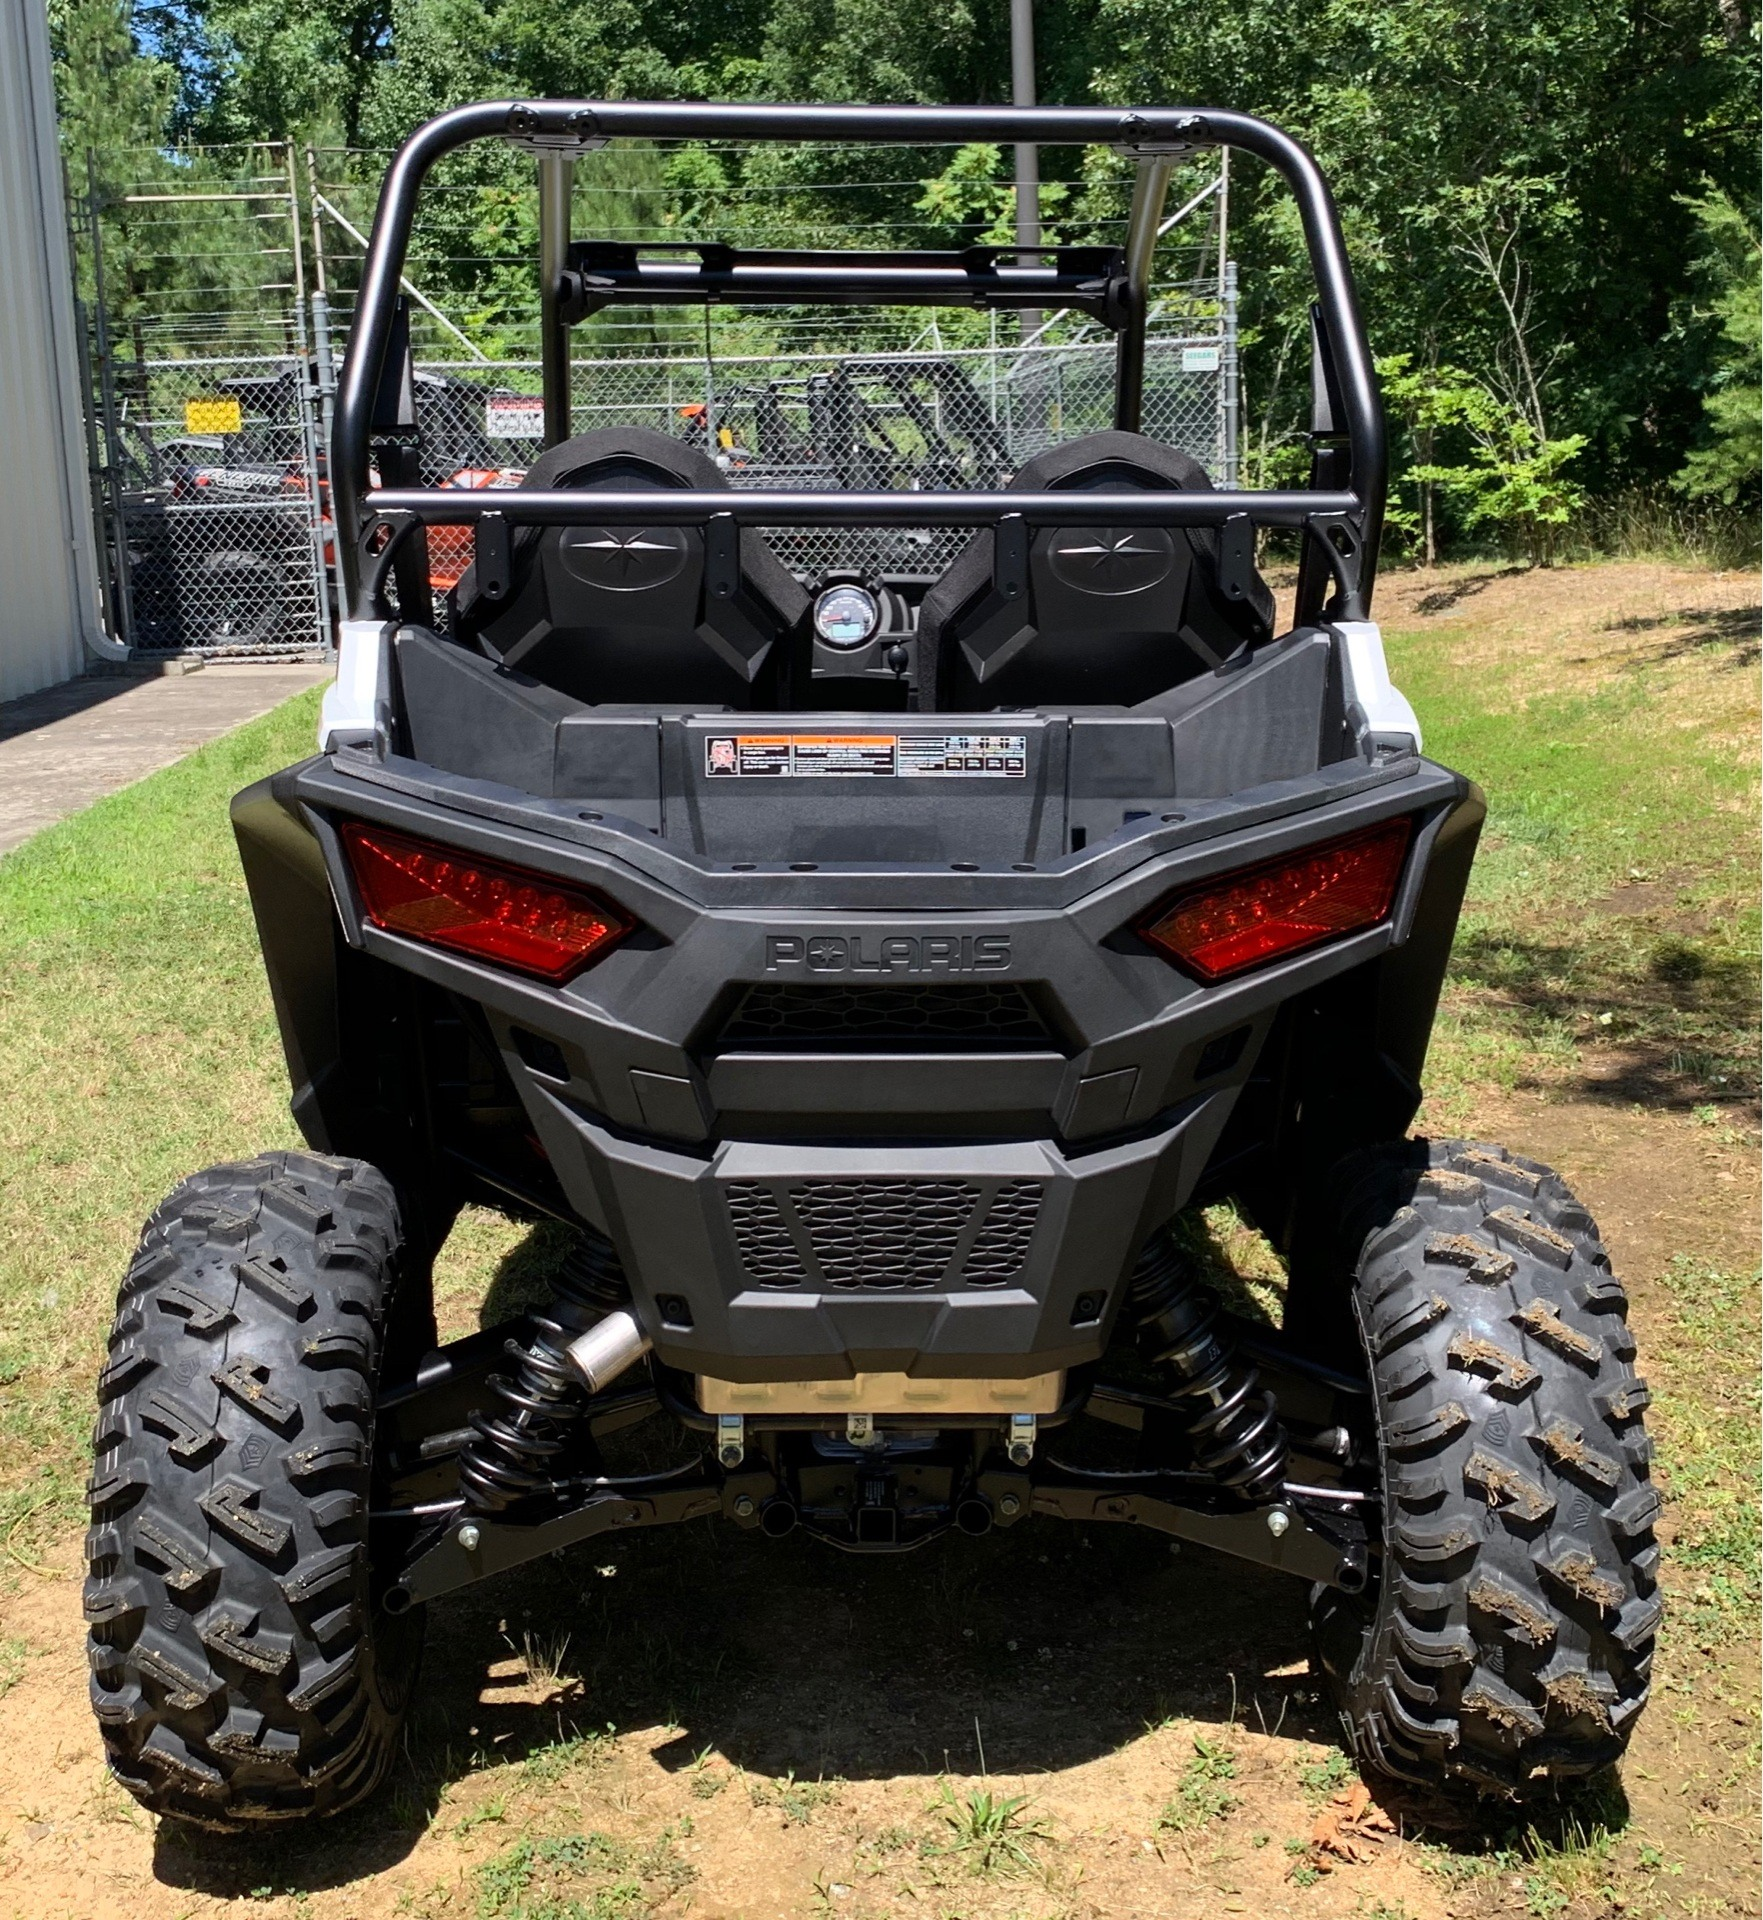 2019 Polaris RZR S 900 in High Point, North Carolina - Photo 6